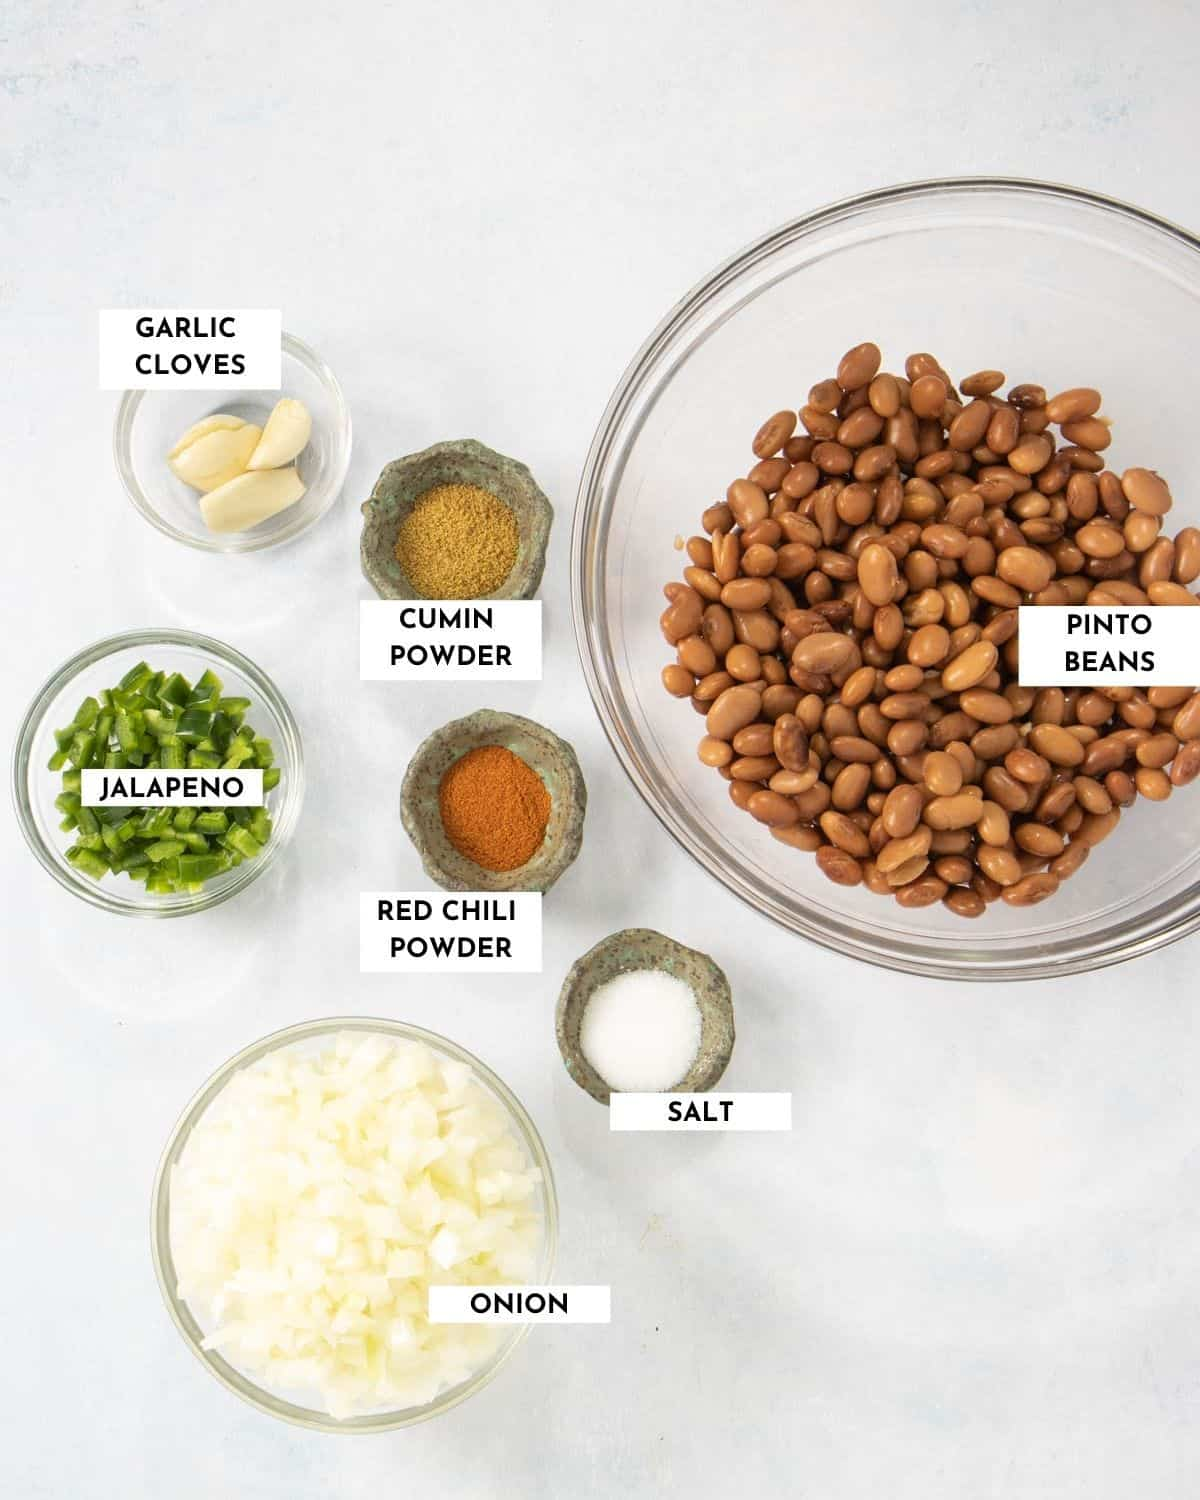 Labeled ingredient list for vegan refried beans  - check recipe card for details!